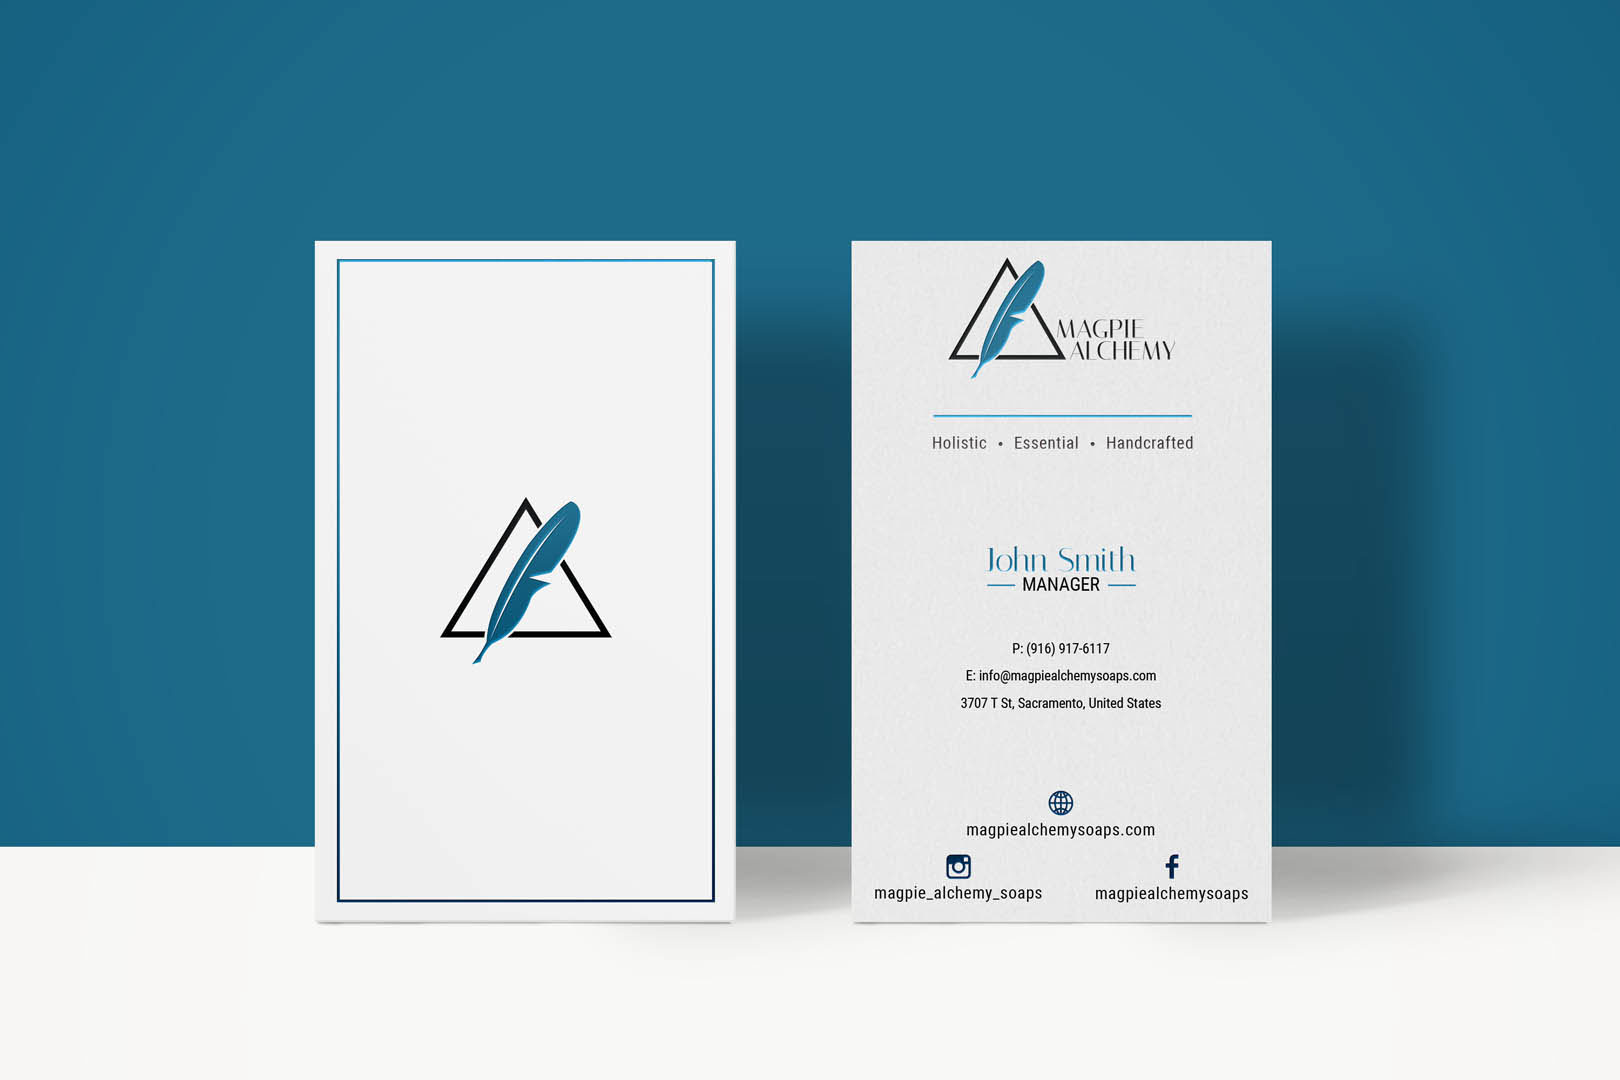 Magpie_Alchemy_Business_Card_mock__0001_Magpie_Alchemy_Business_Card_mock_v5